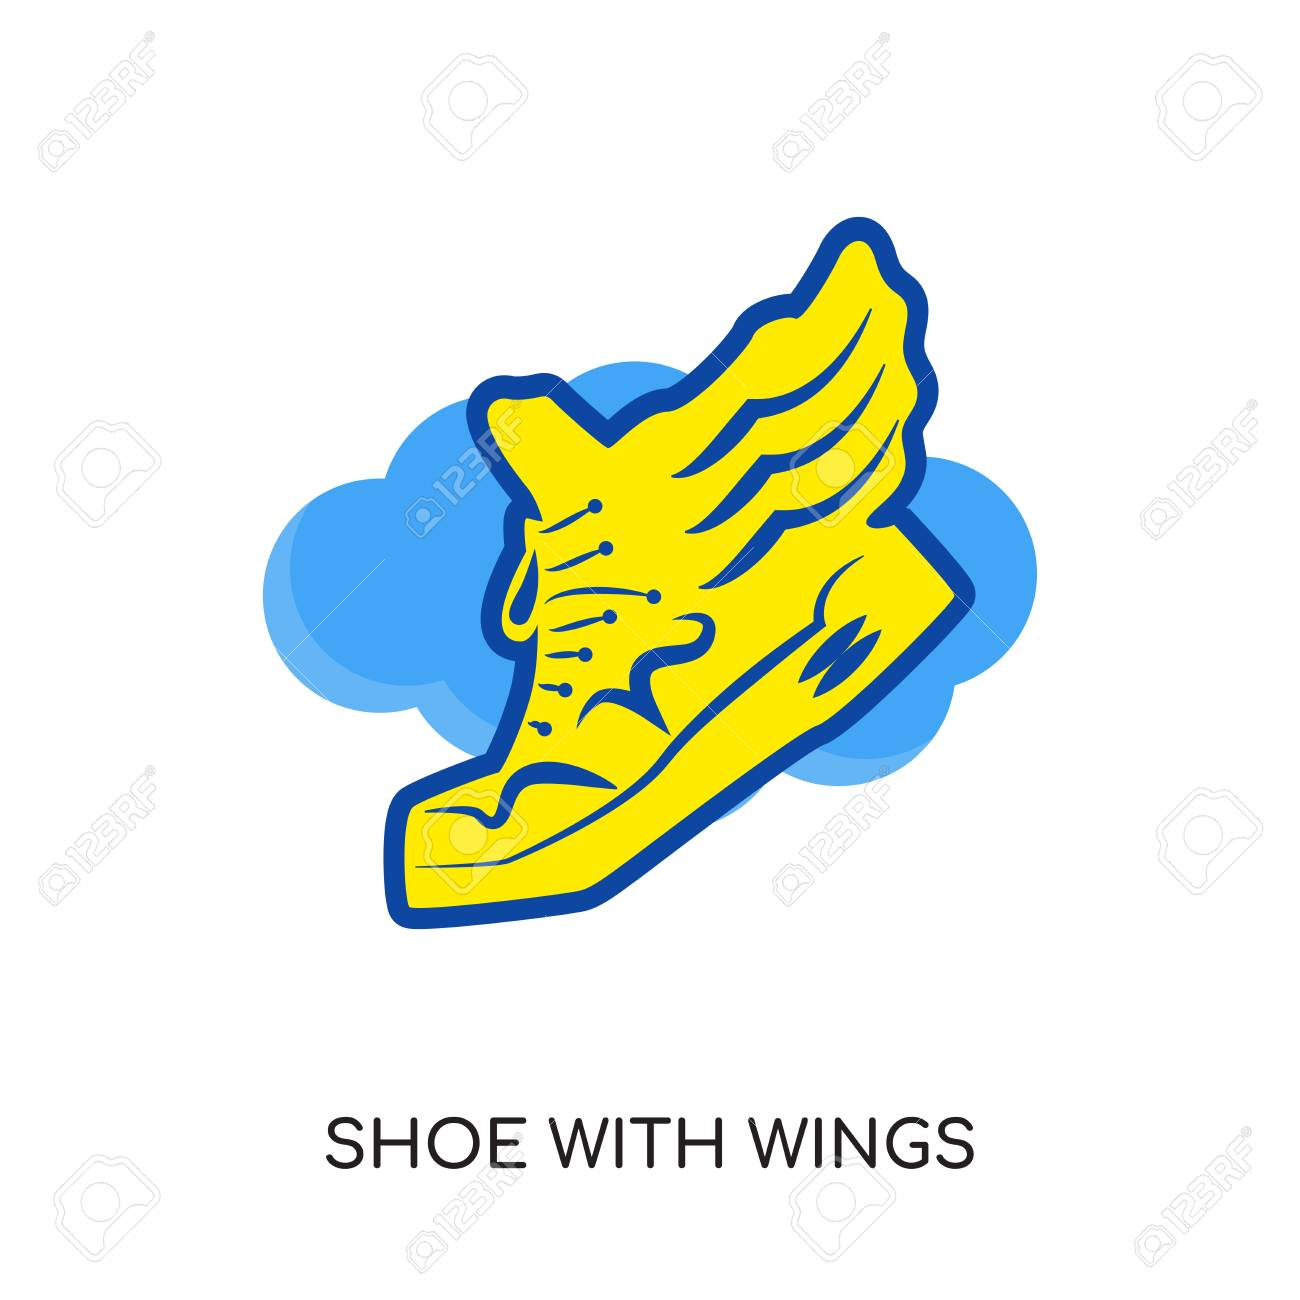 shoe with wings logo isolated on white background for your web rh 123rf com shoe with wings logo brand shoes with wings logo quiz